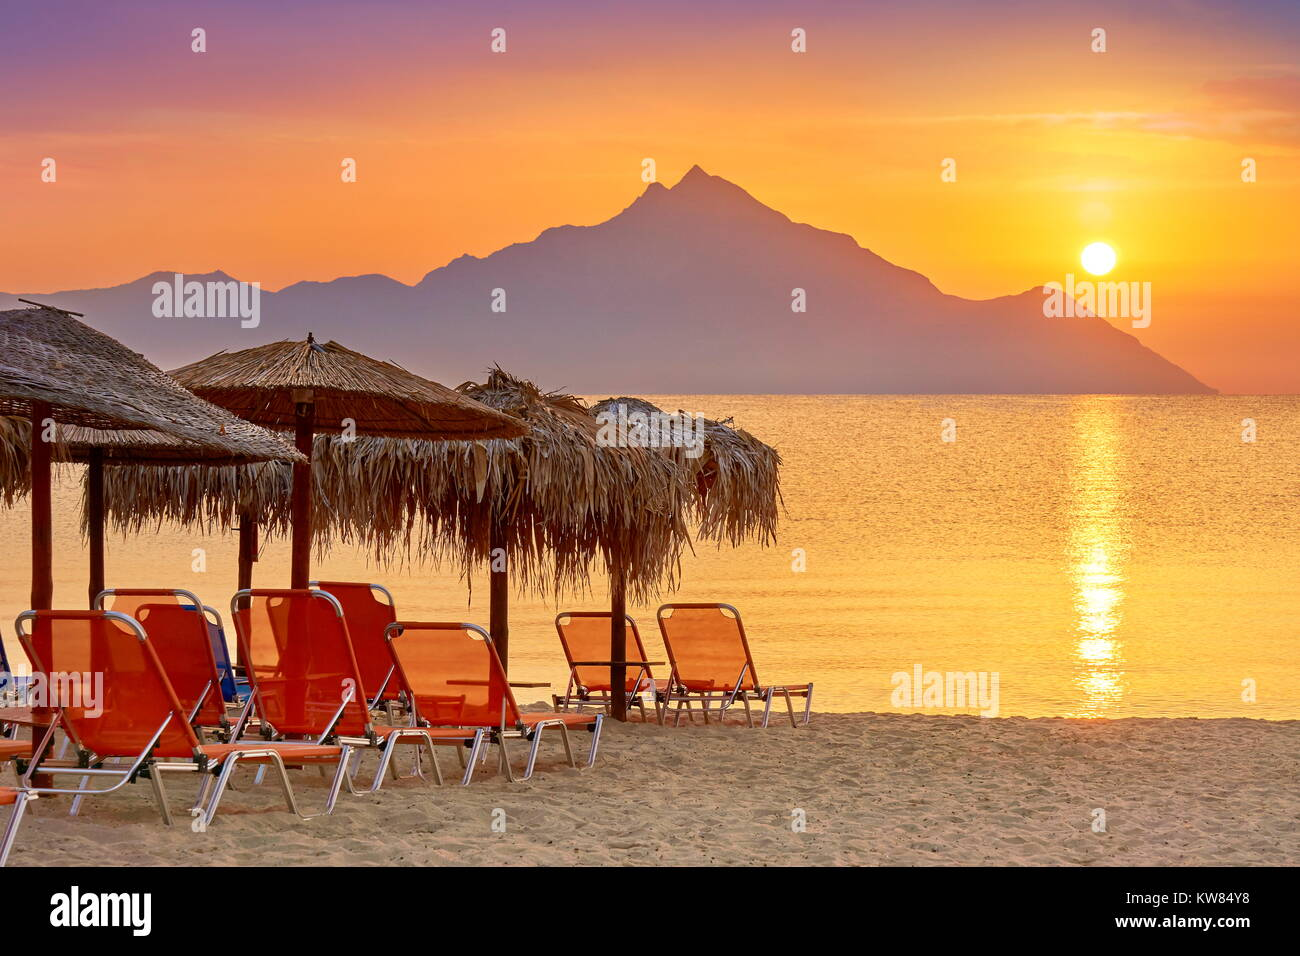 Sunrise at Halkidiki (or Chalkidiki) Beach, Mount Athos in the background, Sithonia, Greece Stock Photo